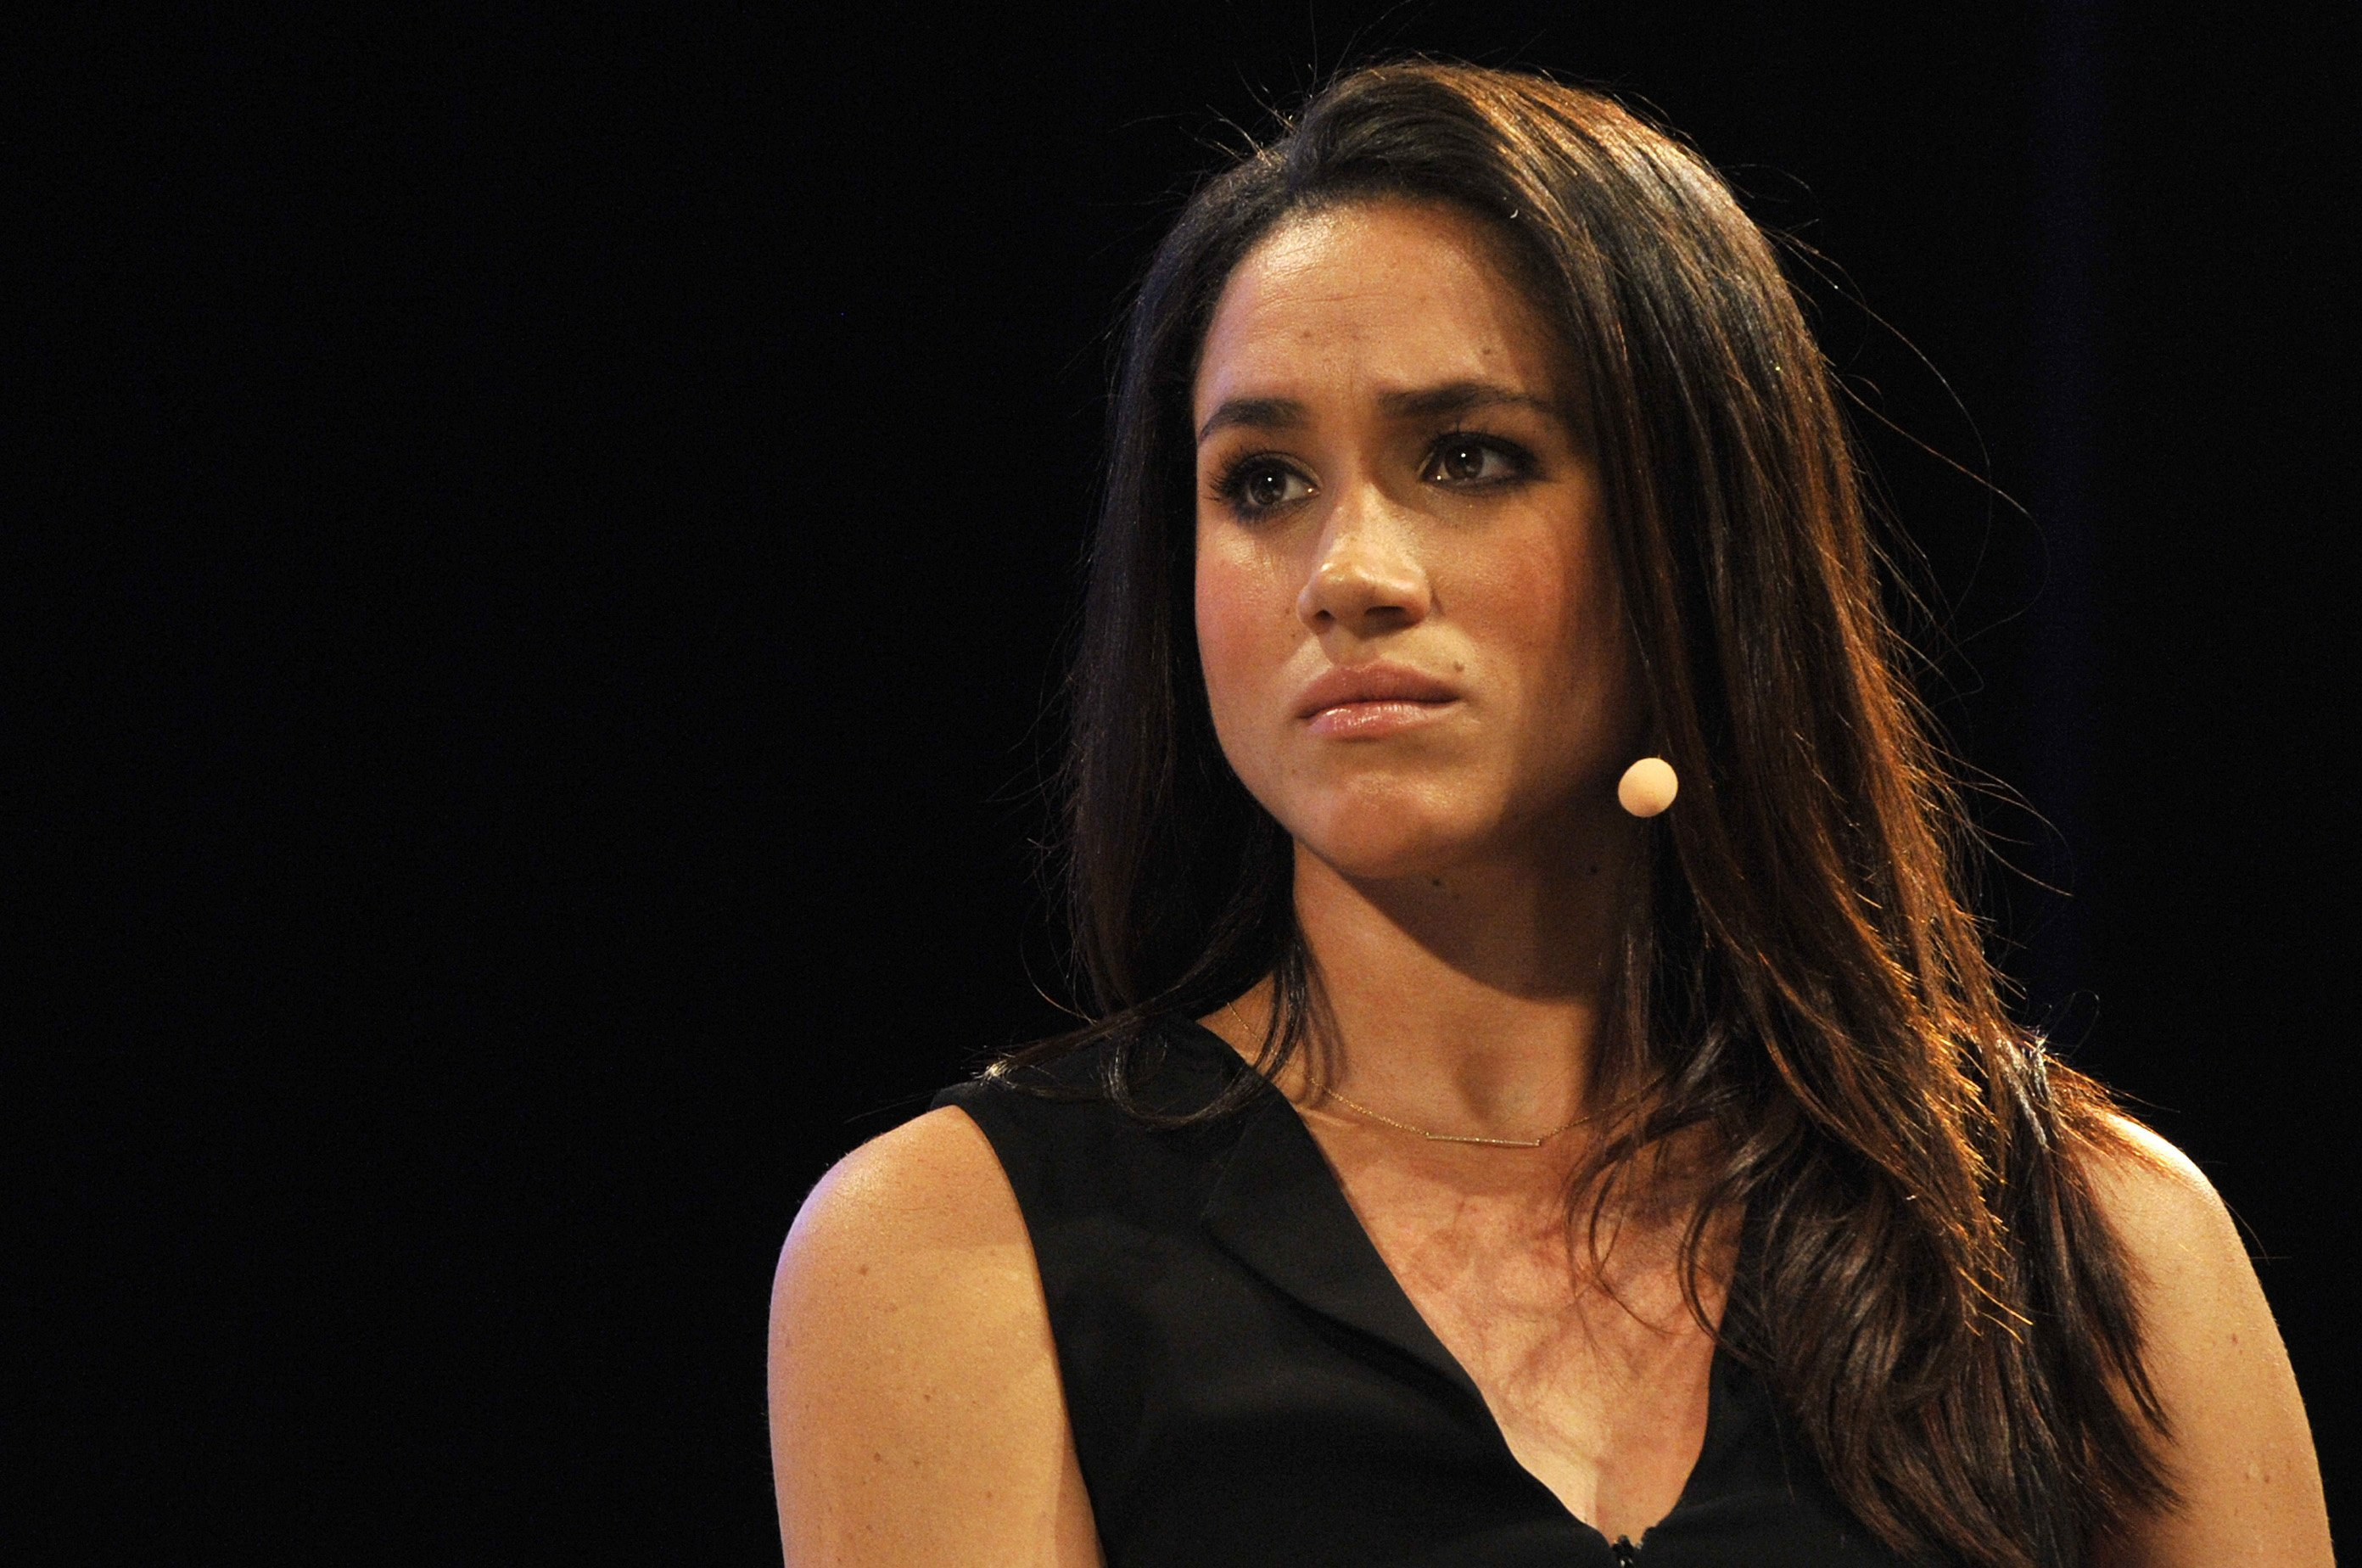 Meghan Markle attends the 'Bridging the Gender Gap' special session at the Convention Centre on October 17, 2014, in Dublin, Ireland.   Source: Getty Images.